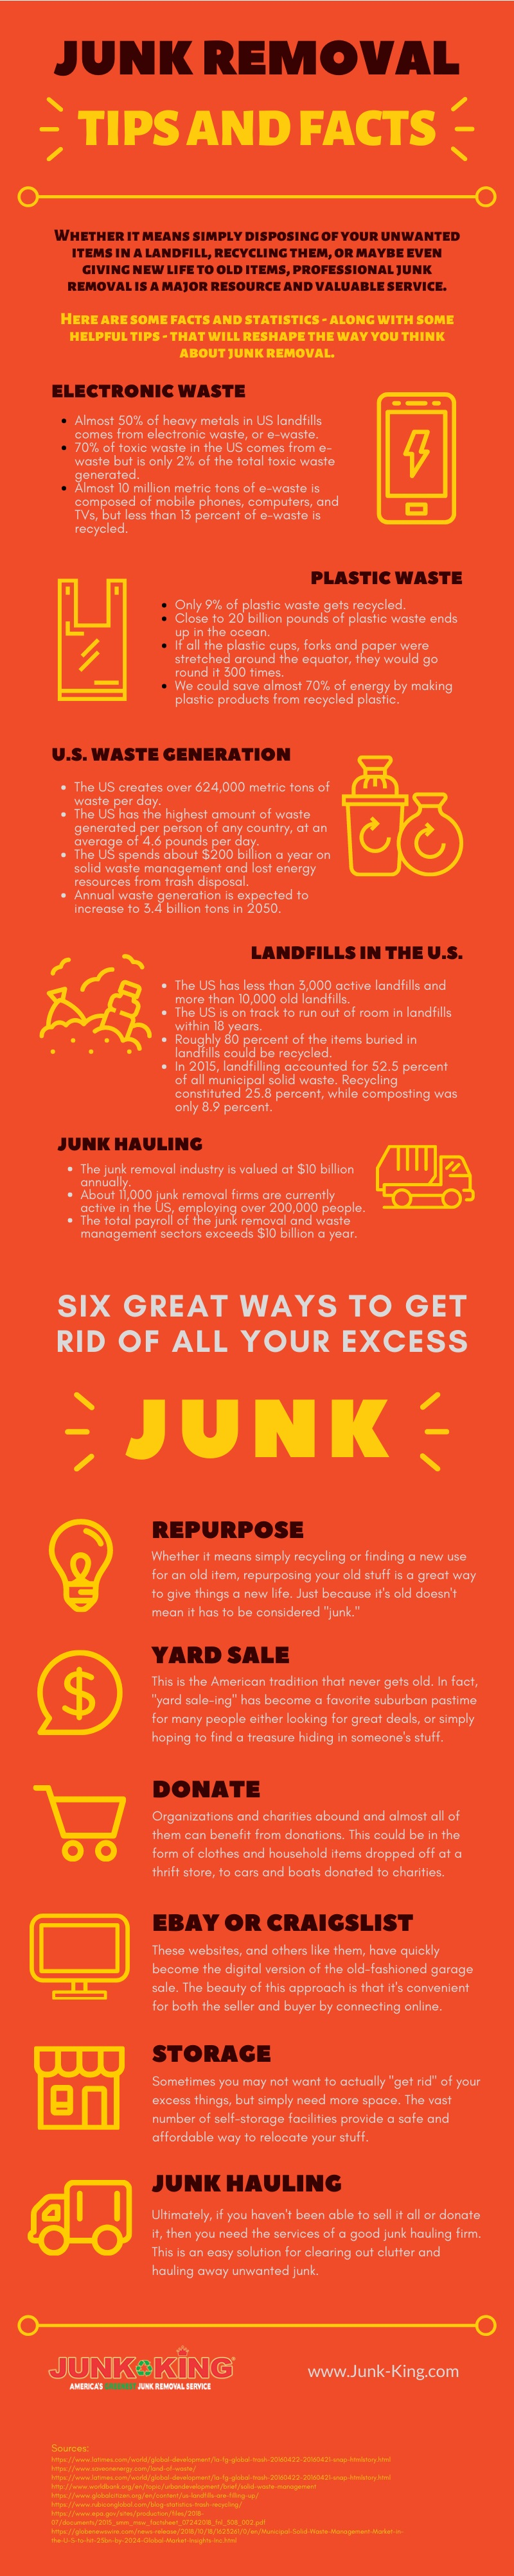 junk-removal-tips-and-facts